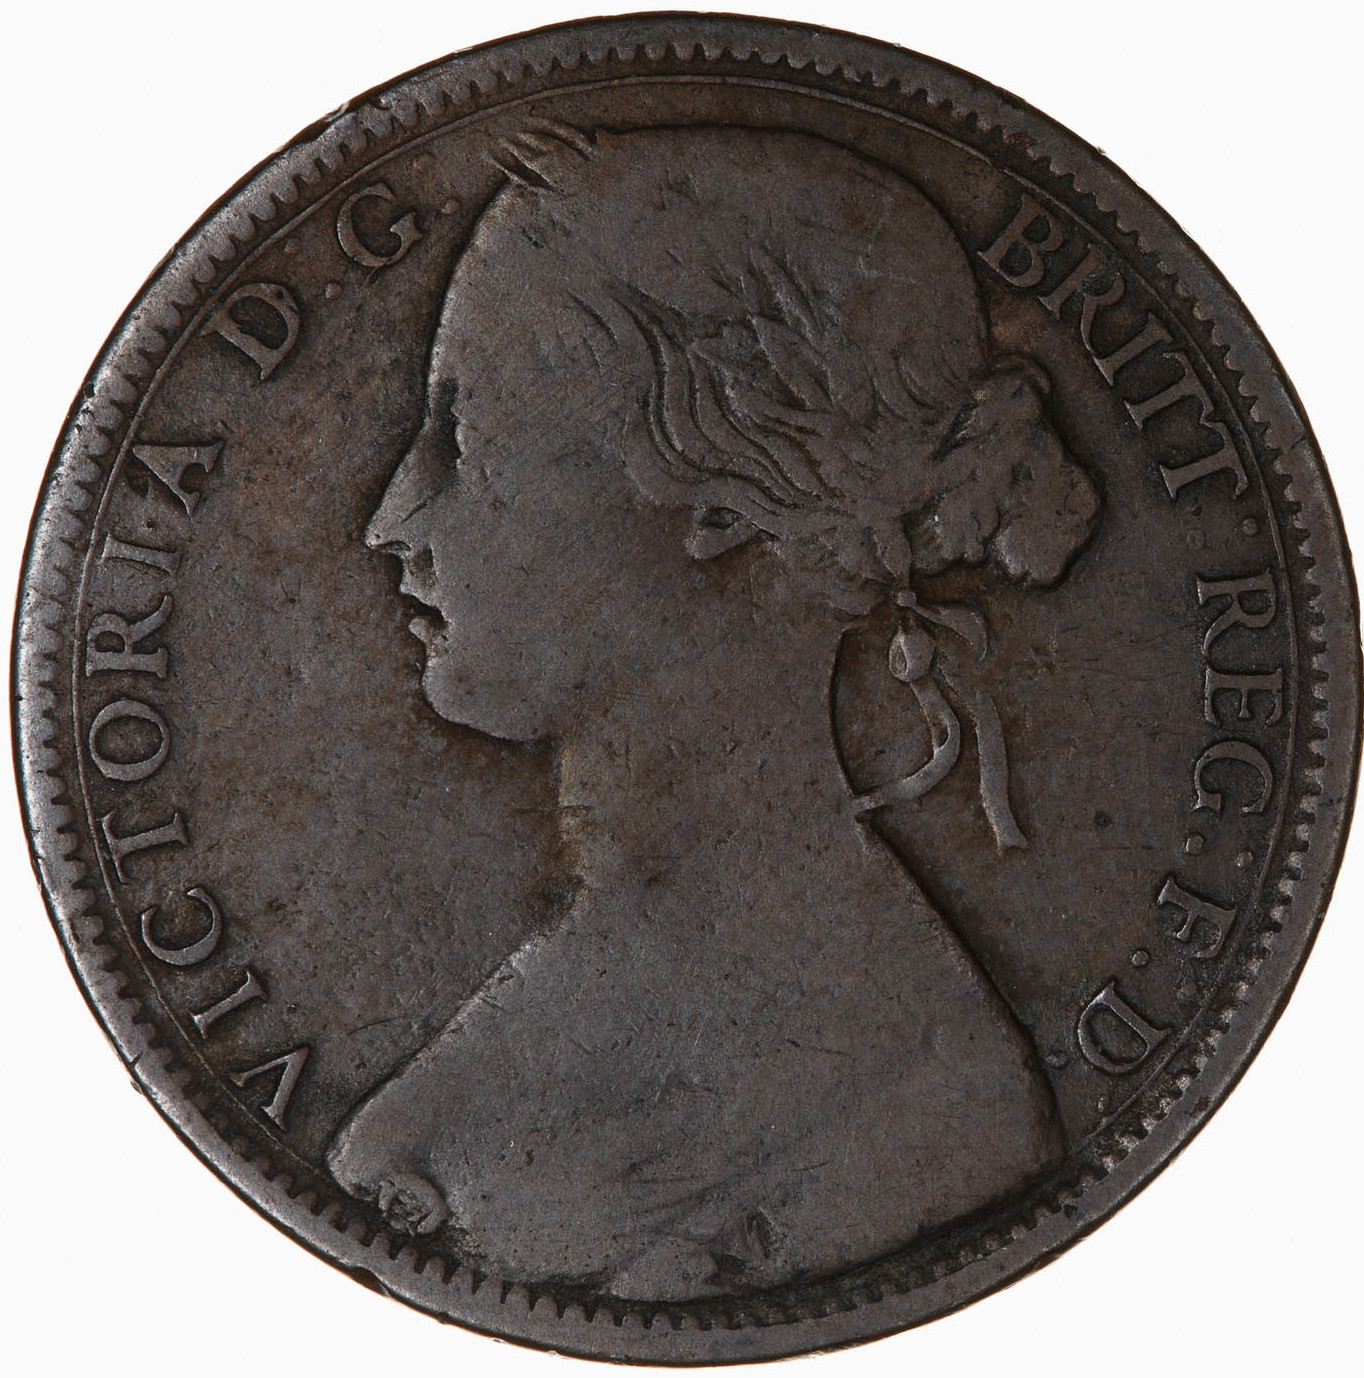 Penny 1864: Photo Coin - Penny, Queen Victoria, Great Britain, 1864